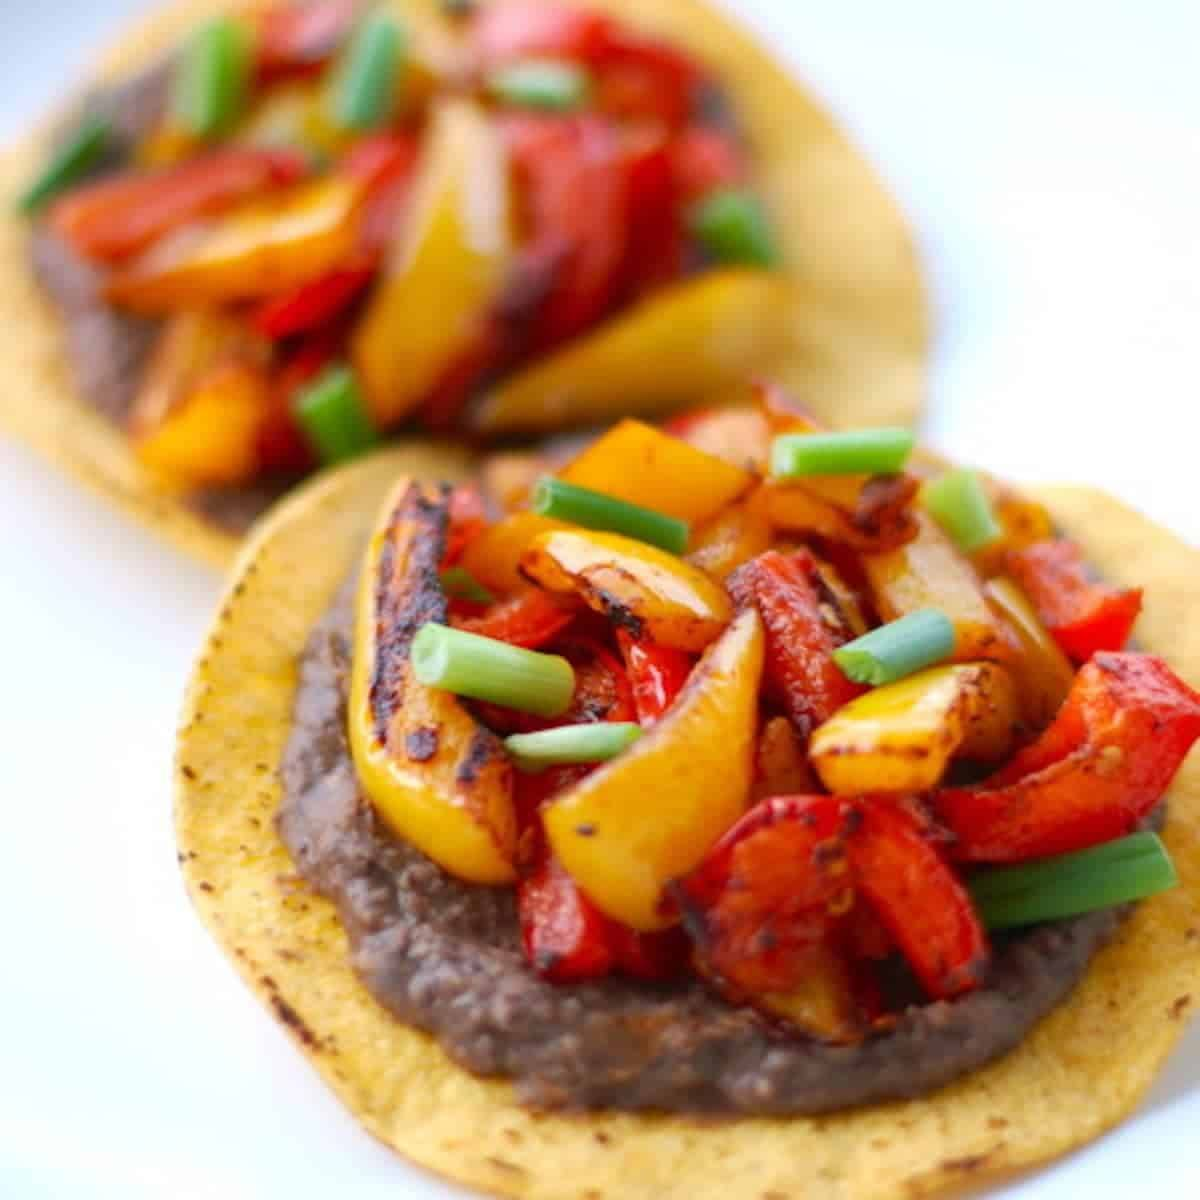 Two roasted bell pepper tostadas on tortillas.